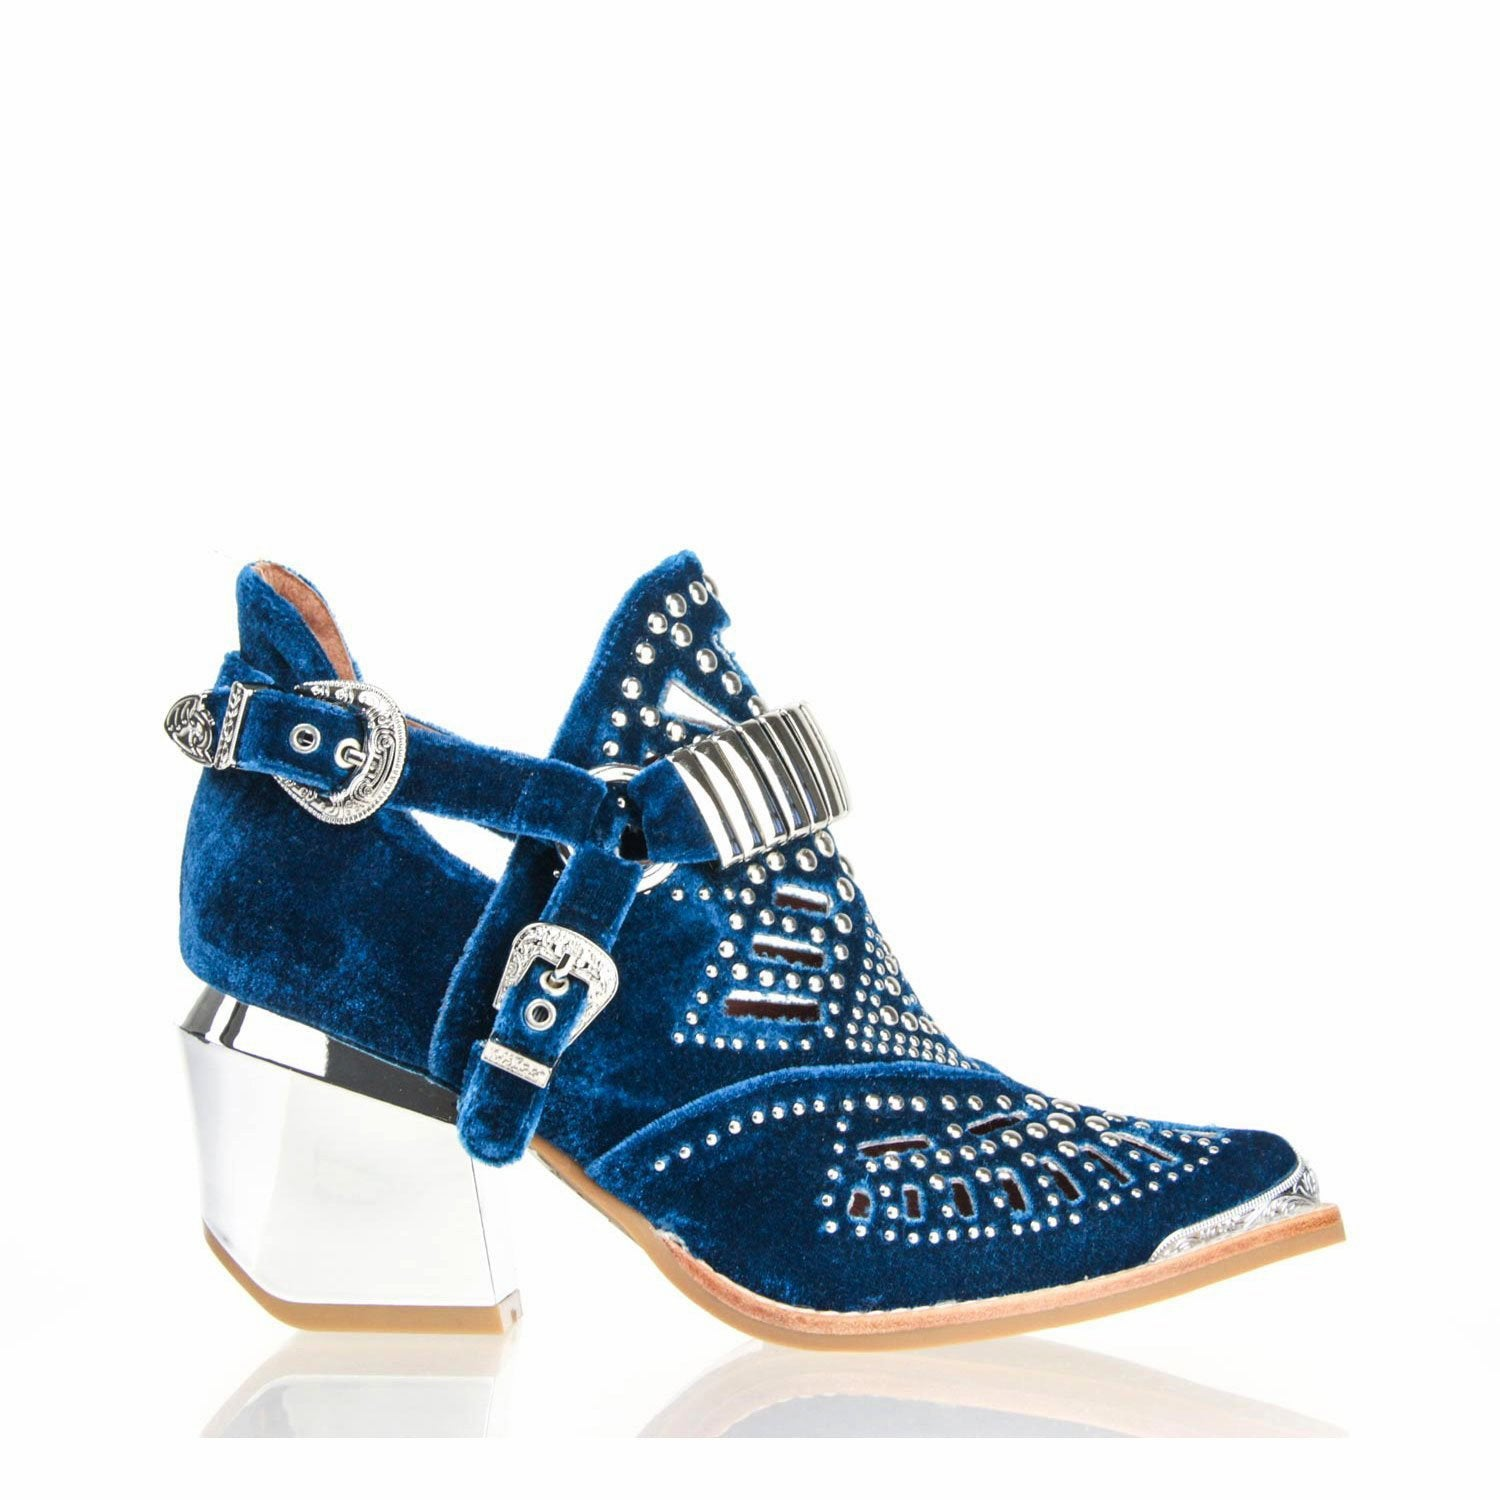 4e19bc2d6e2c Details about NEW JEFFREY CAMPBELL CALHOUN 4M STUDDED HARNESS BOOTIE BLUE  WOMENS BOOTS